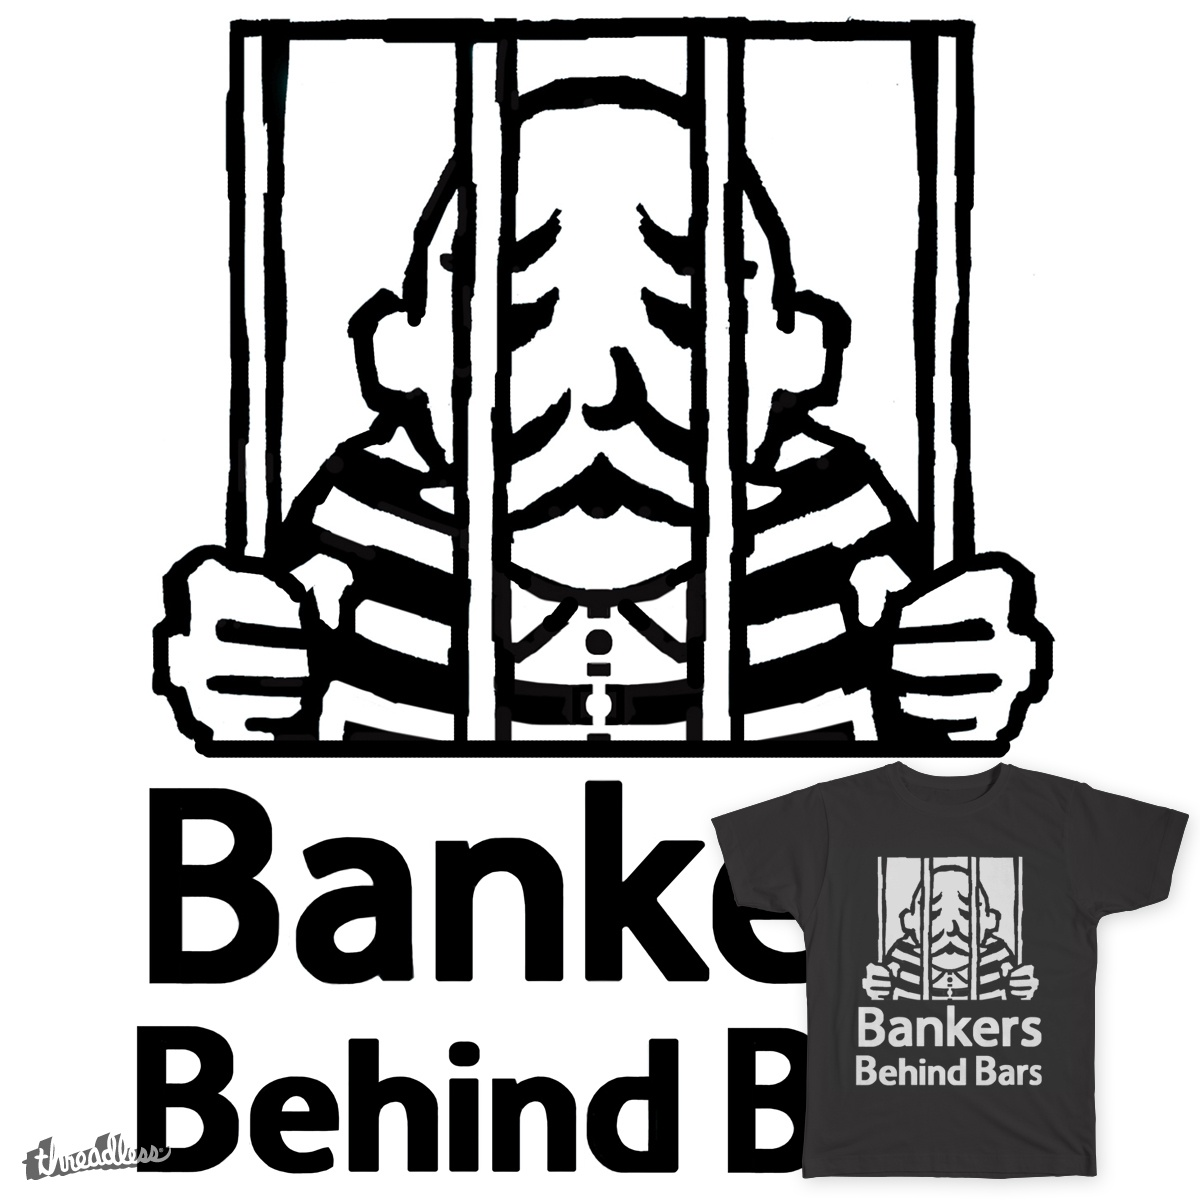 Bankers Behind Bars, a cool t-shirt design